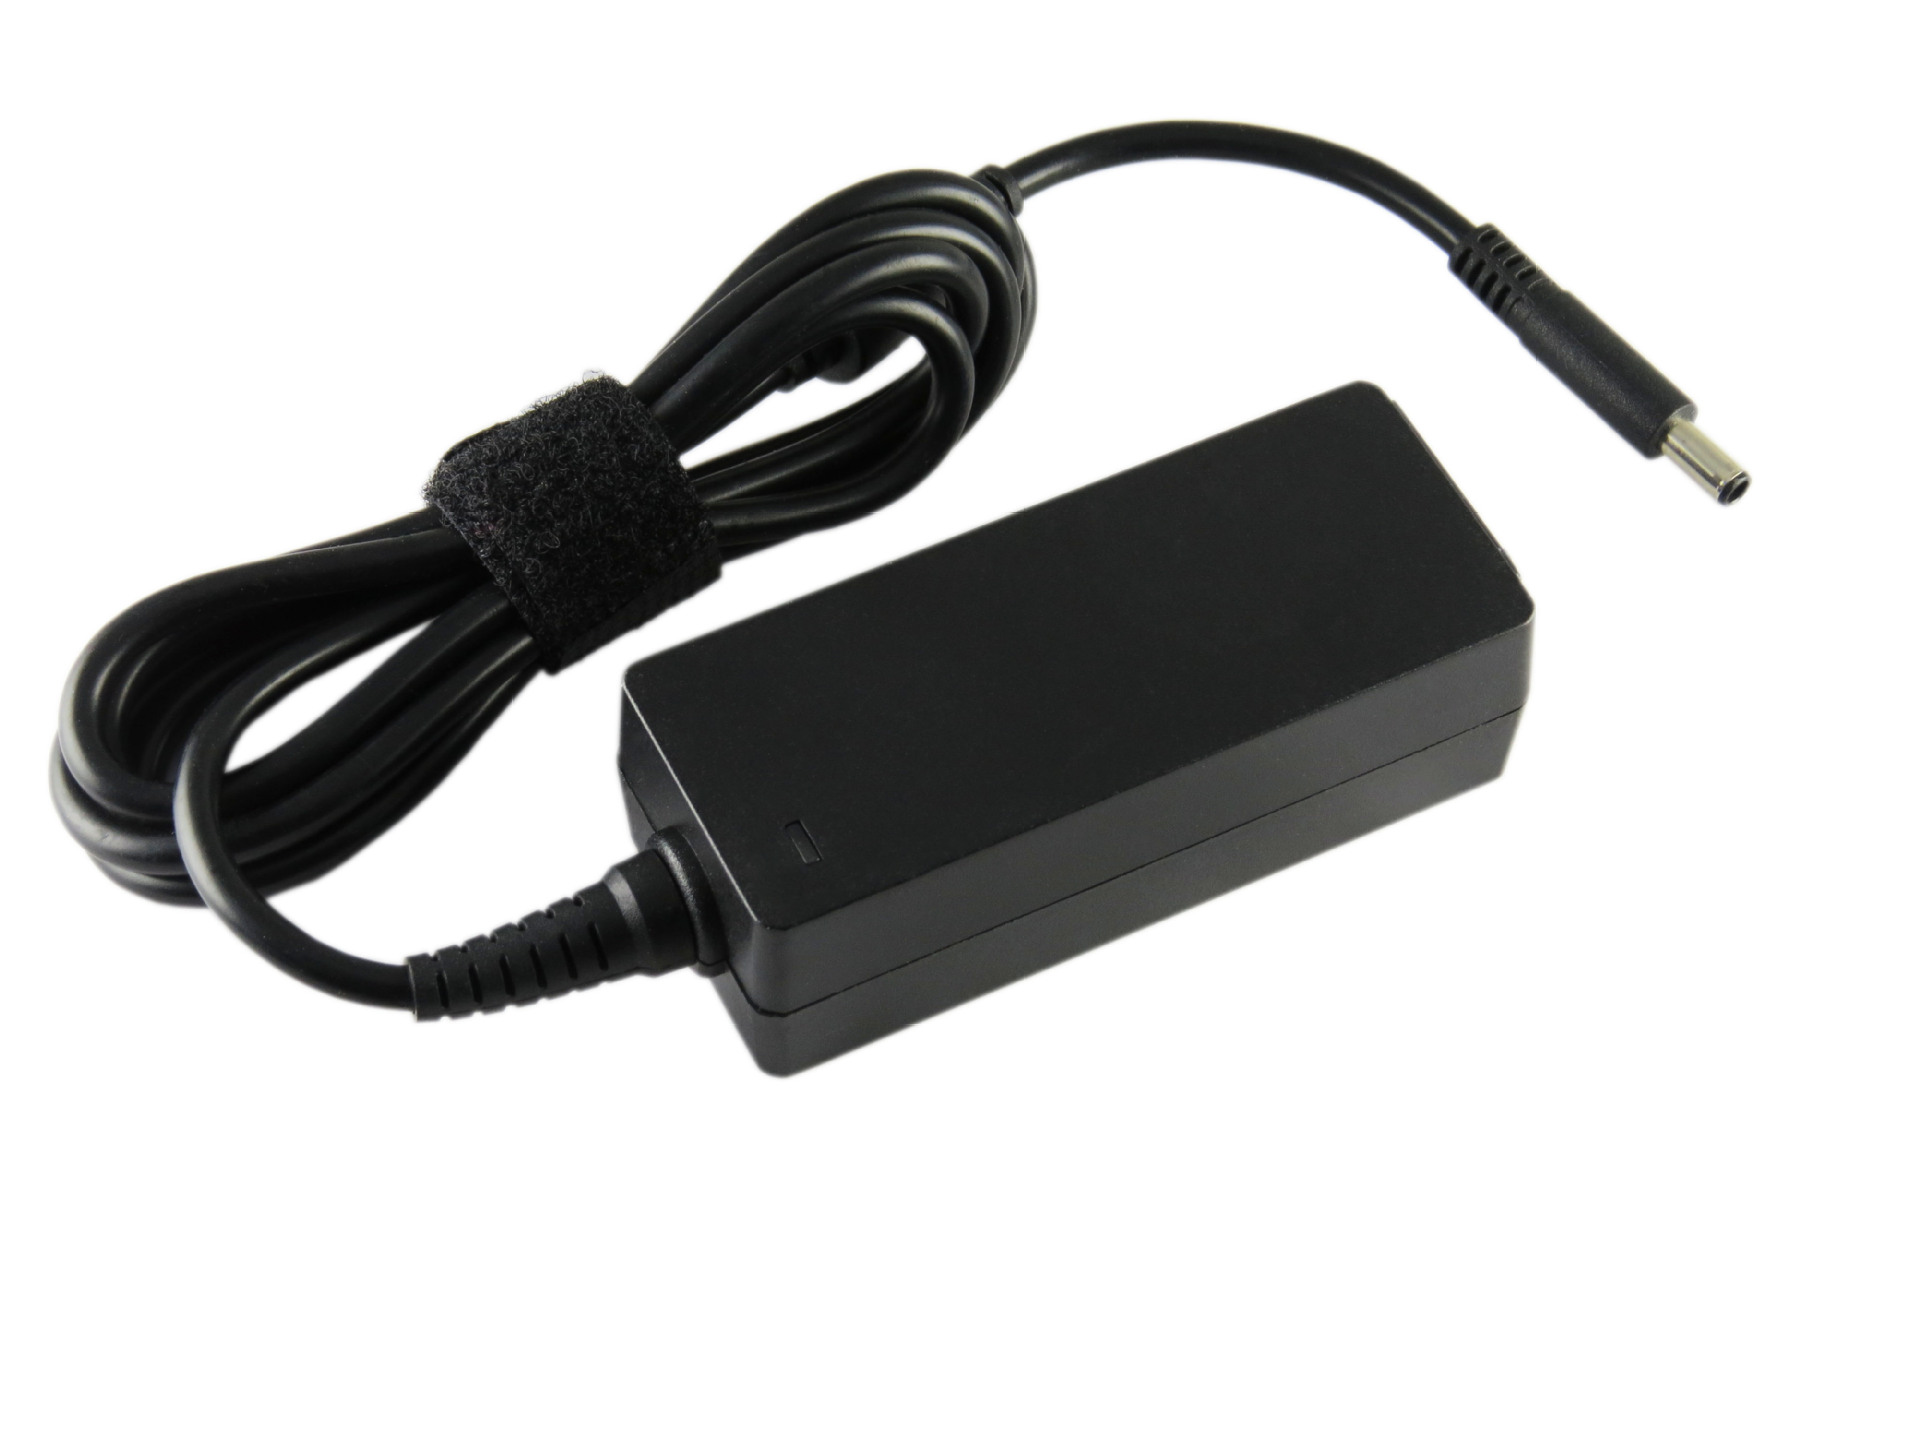 19.5 V 2.31A 45 W Laptop Ac Adapter Lader Voor Dell Xps 12 13 13R 13Z 14 13-L321X 13-6928Slv 13-4040 Slv Fabriek Direct